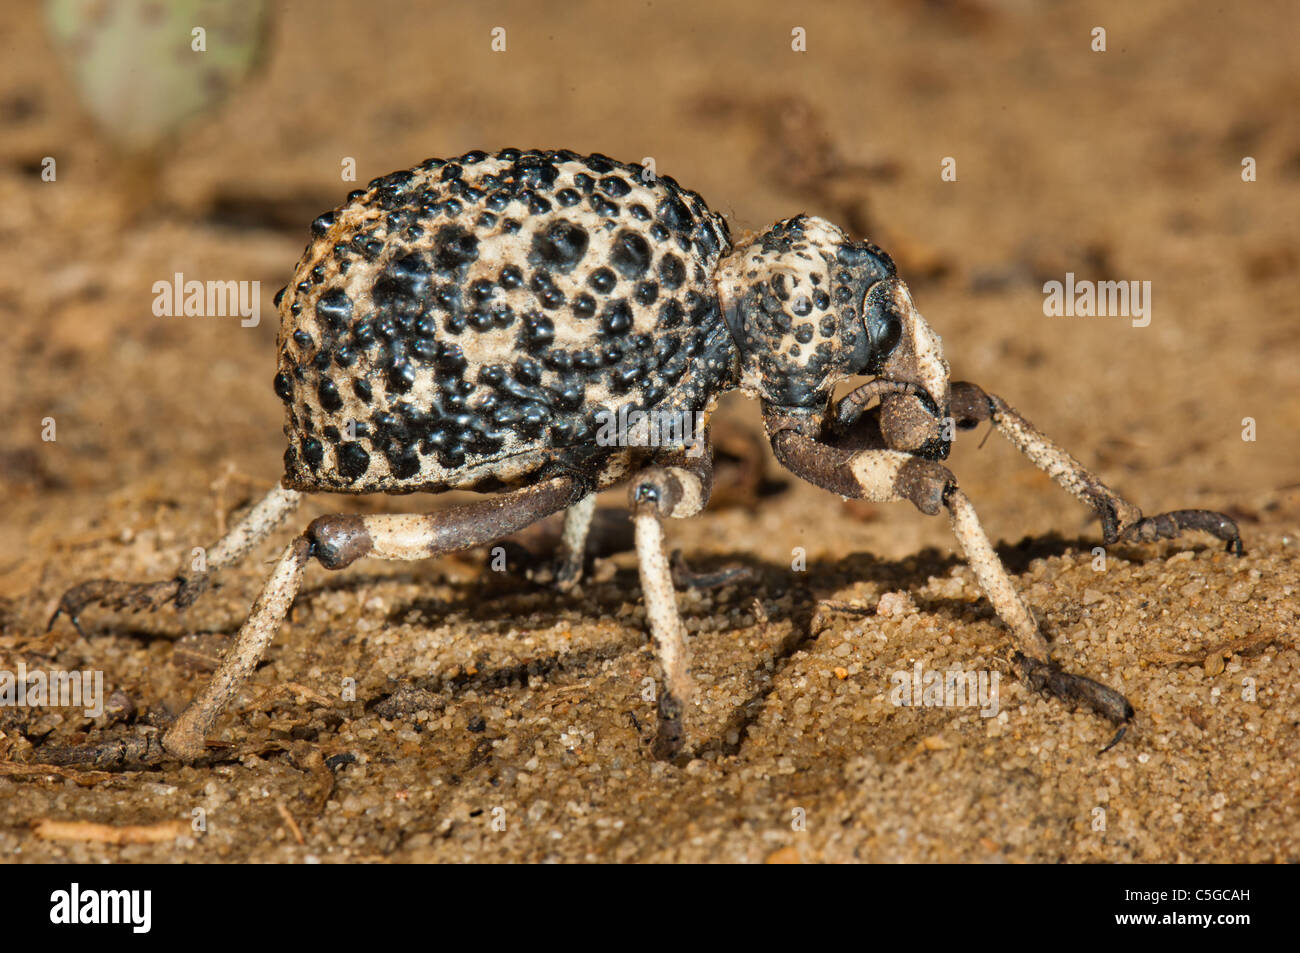 wart warty Weevil of madagascar big 2 inch insect Curculionoidea on ground animal africa brown brownly huge giant - Stock Image